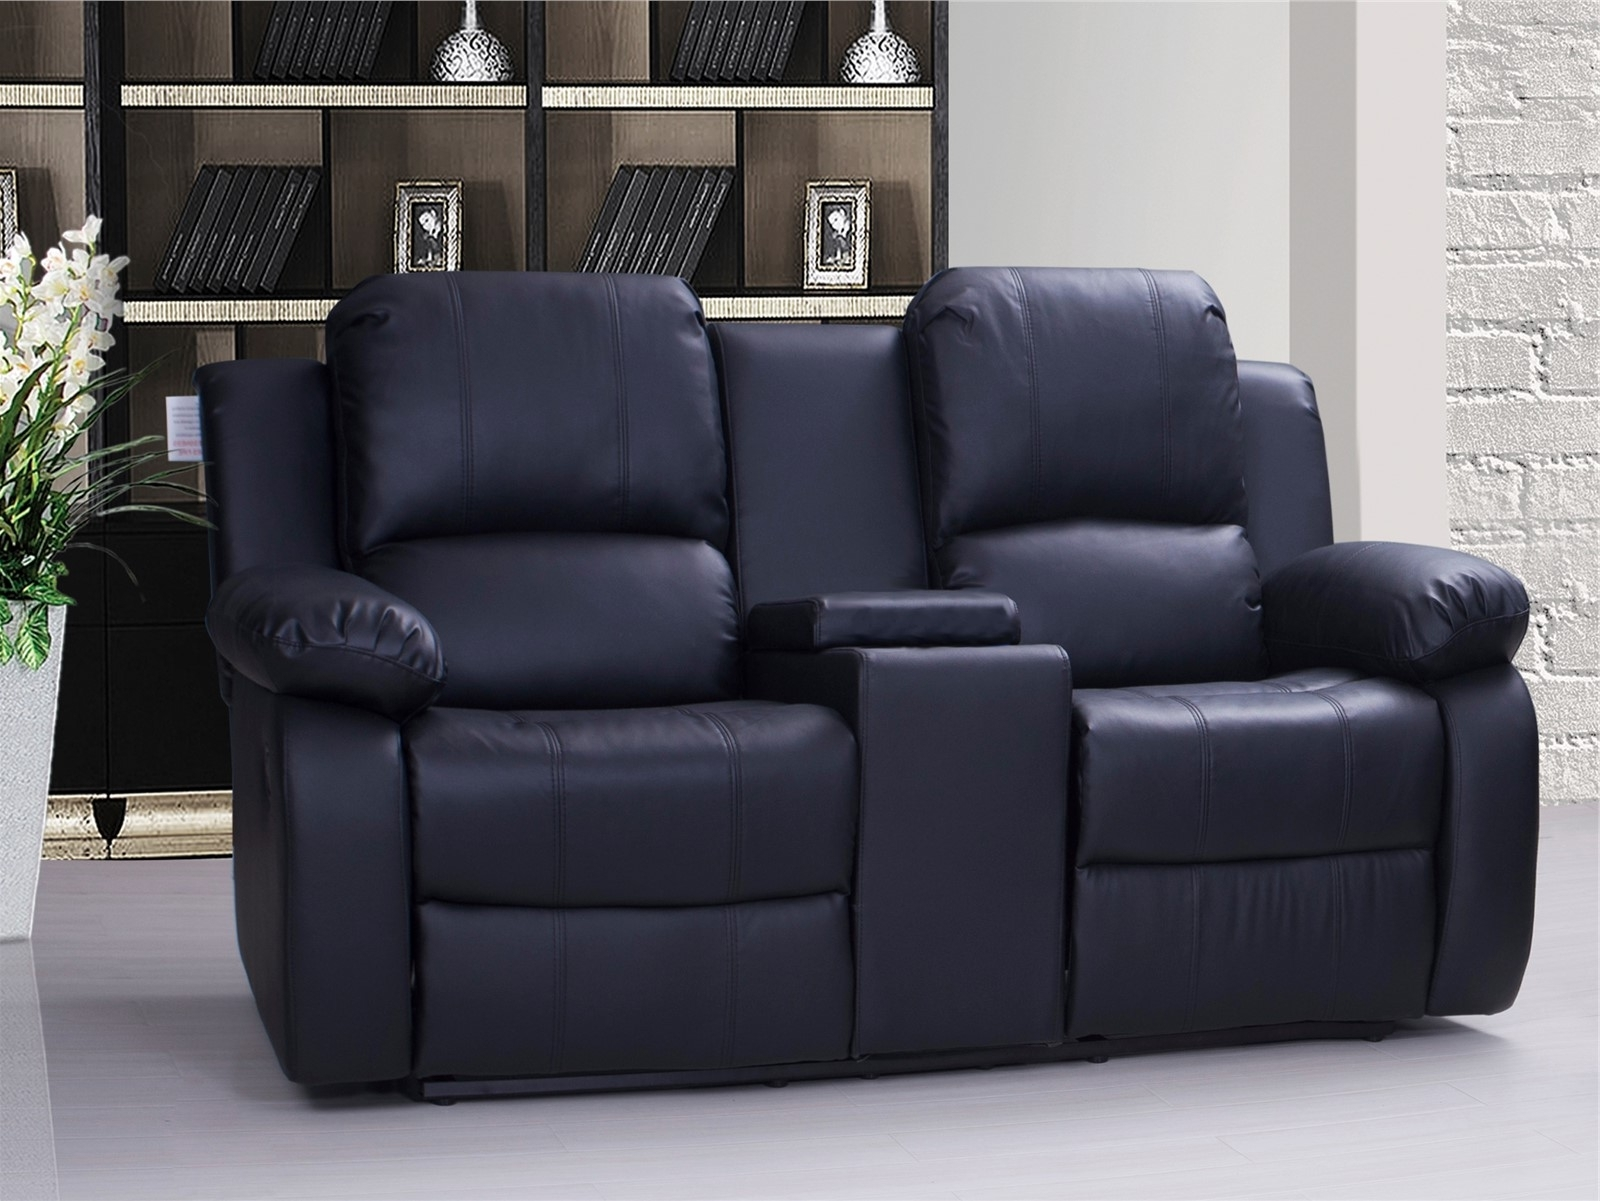 Leather 2 Seater Recliner Sofa | Jamie 3 2 Seater Recliner Sofa Set ...